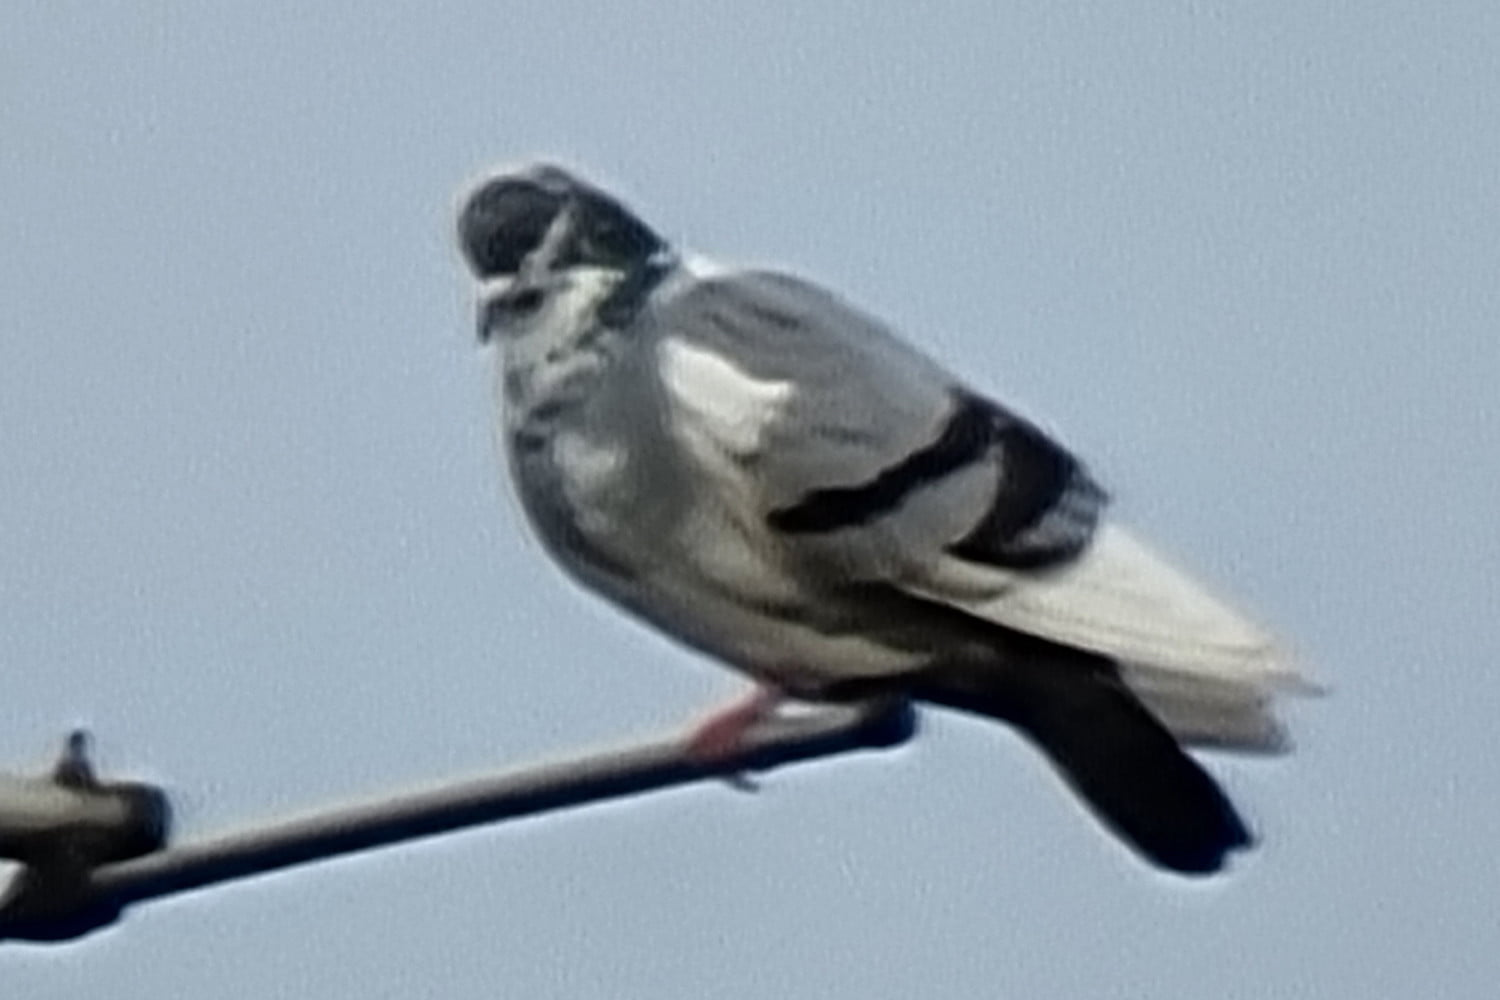 samsung galaxy s21 ultra review 100x zoom pigeon